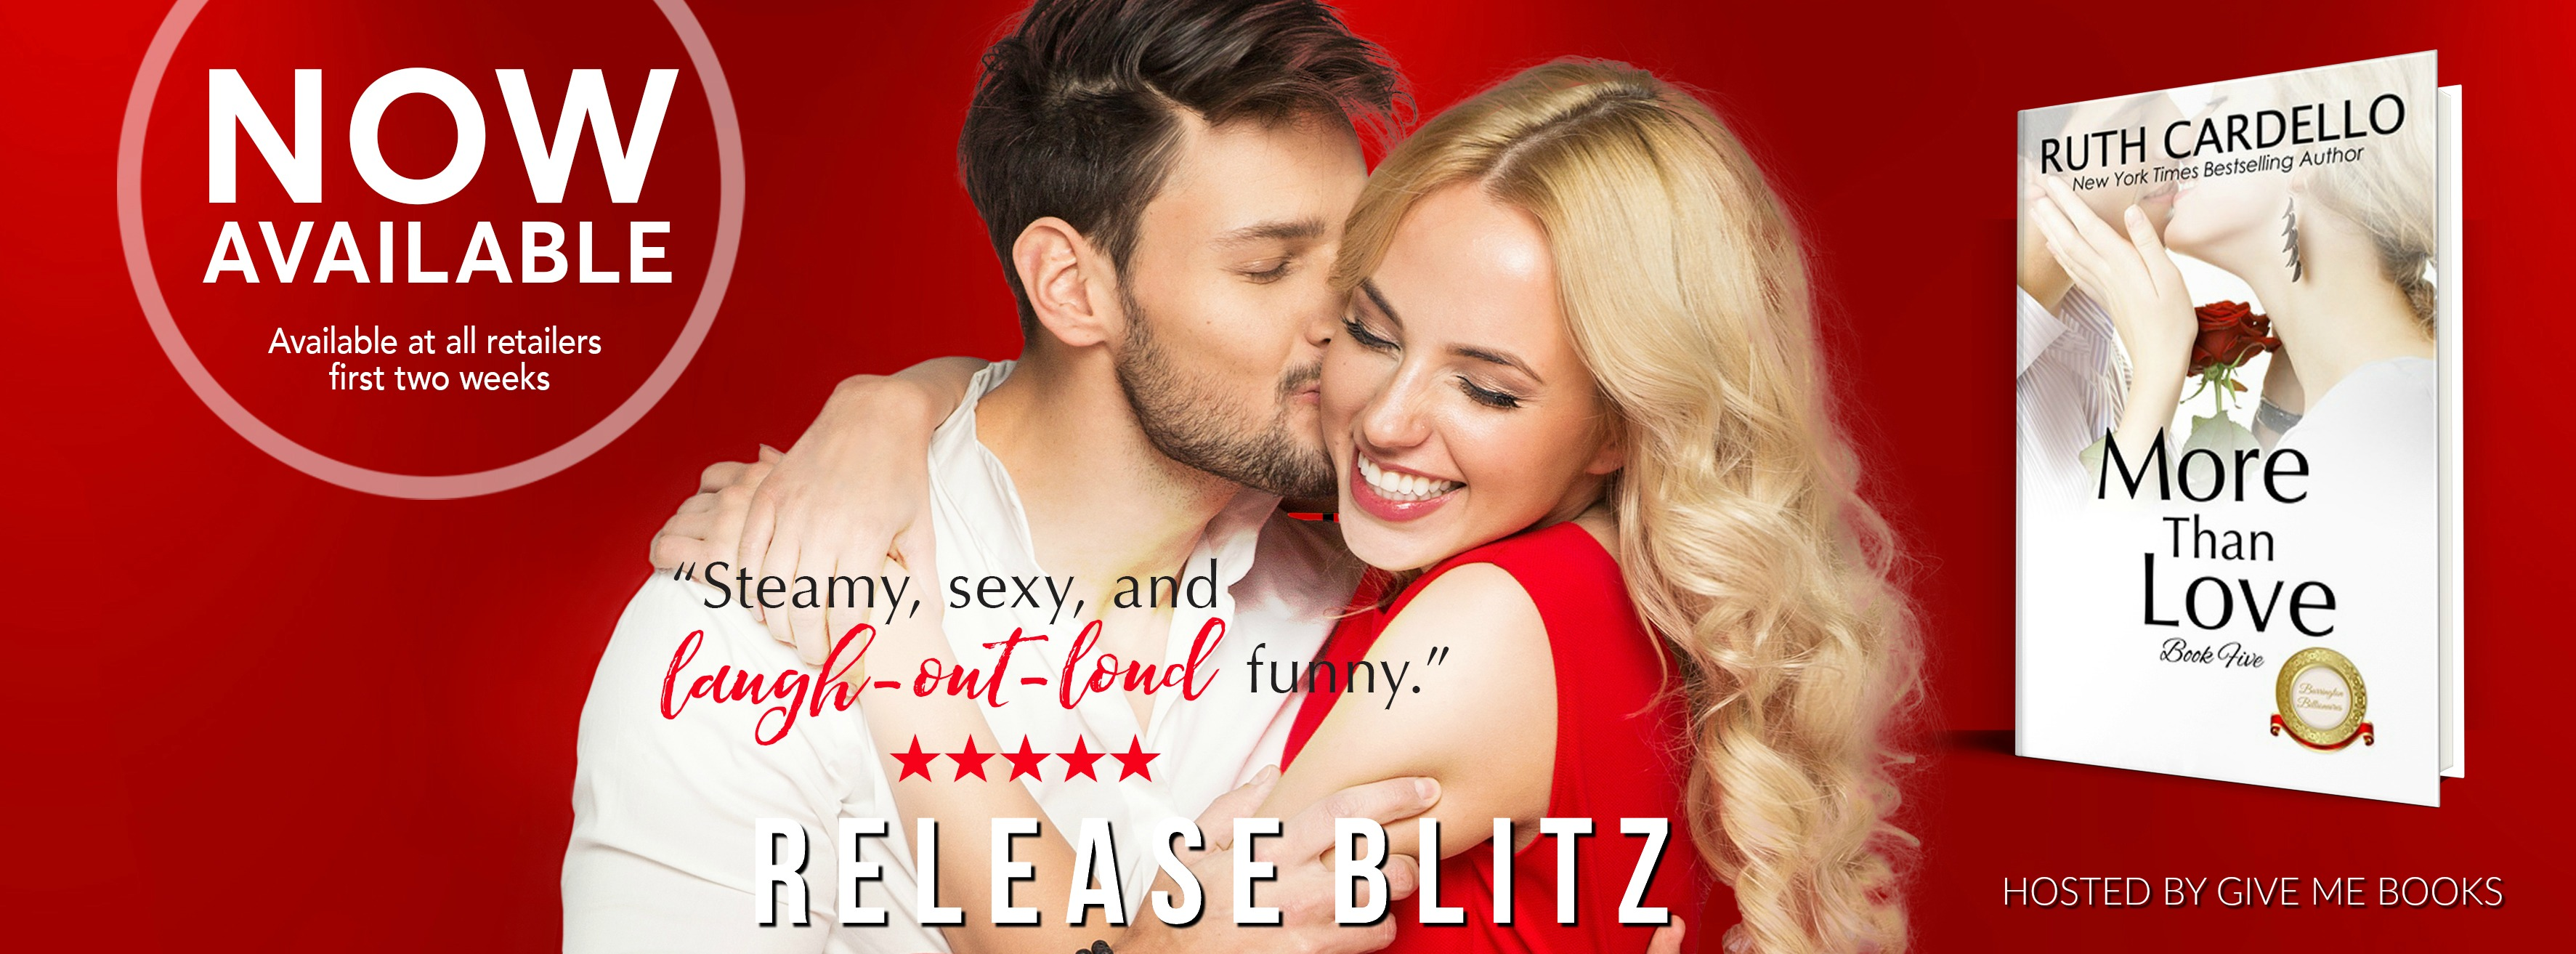 Release Blitz – More Than Love by Ruth Cardello